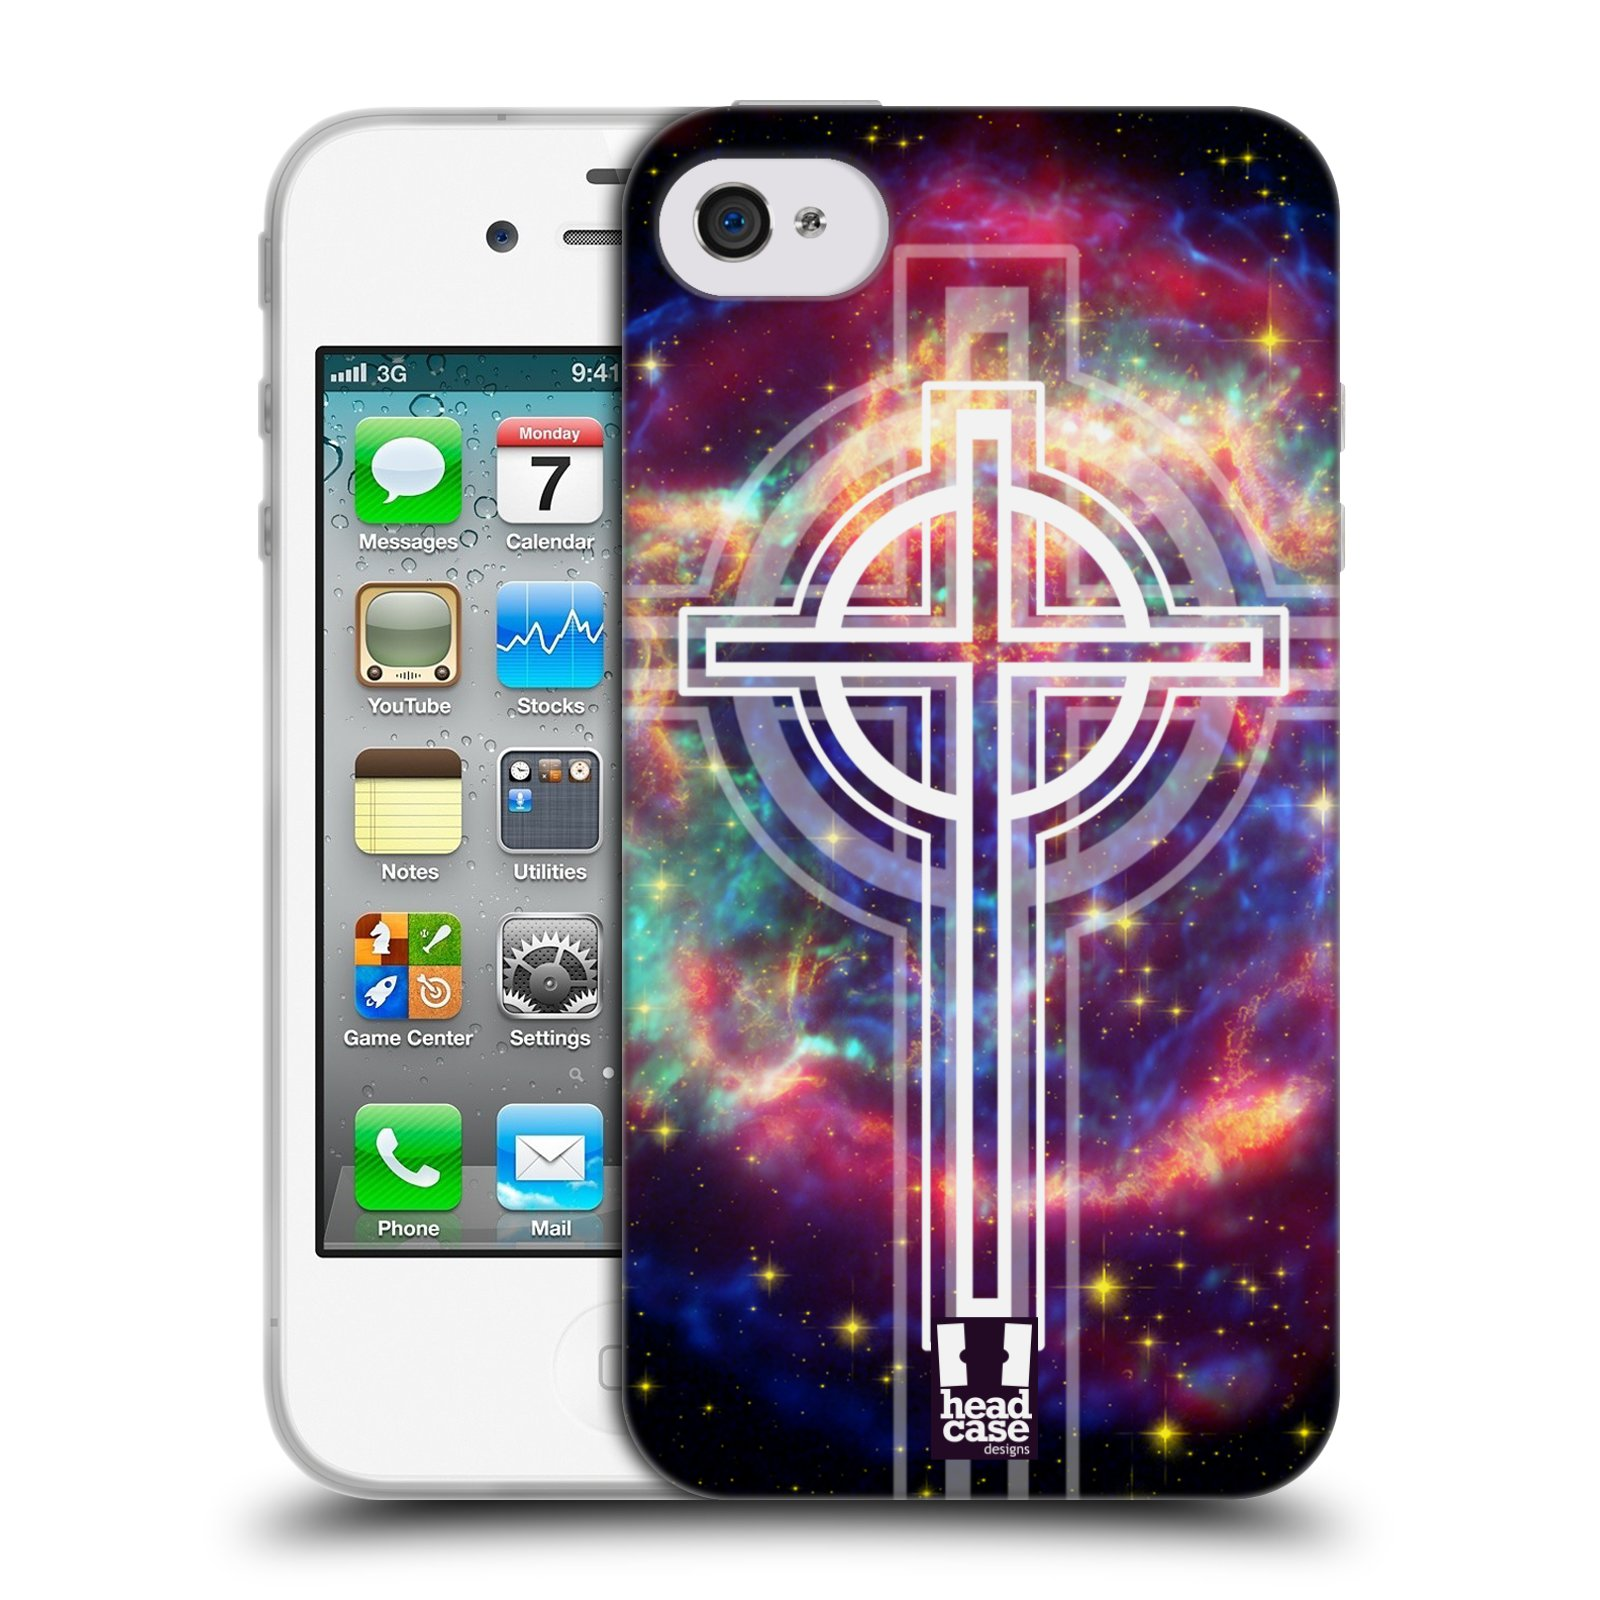 HEAD CASE silikonový obal na mobil Apple Iphone 4 4S vzor Kříž Cross KŘIŽ  VESMÍR 482a3fce4d5